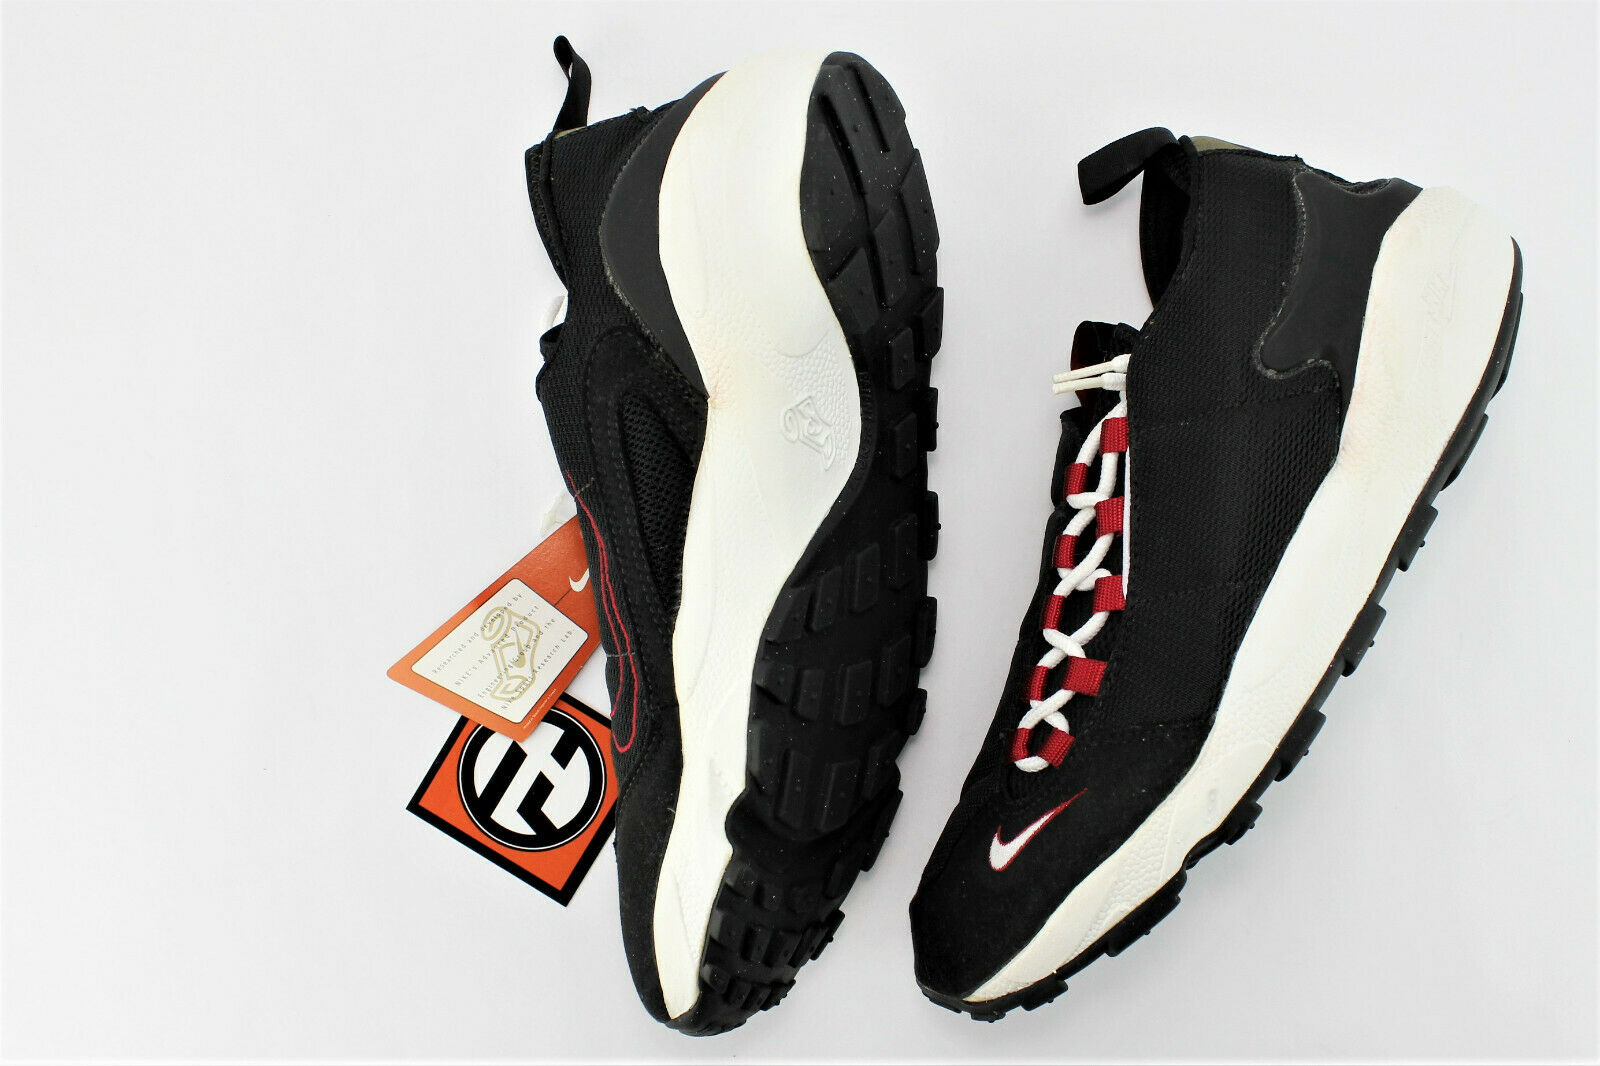 Nike Air Footscape Black White Varisty Red Size 10.5 1996' 104053 011